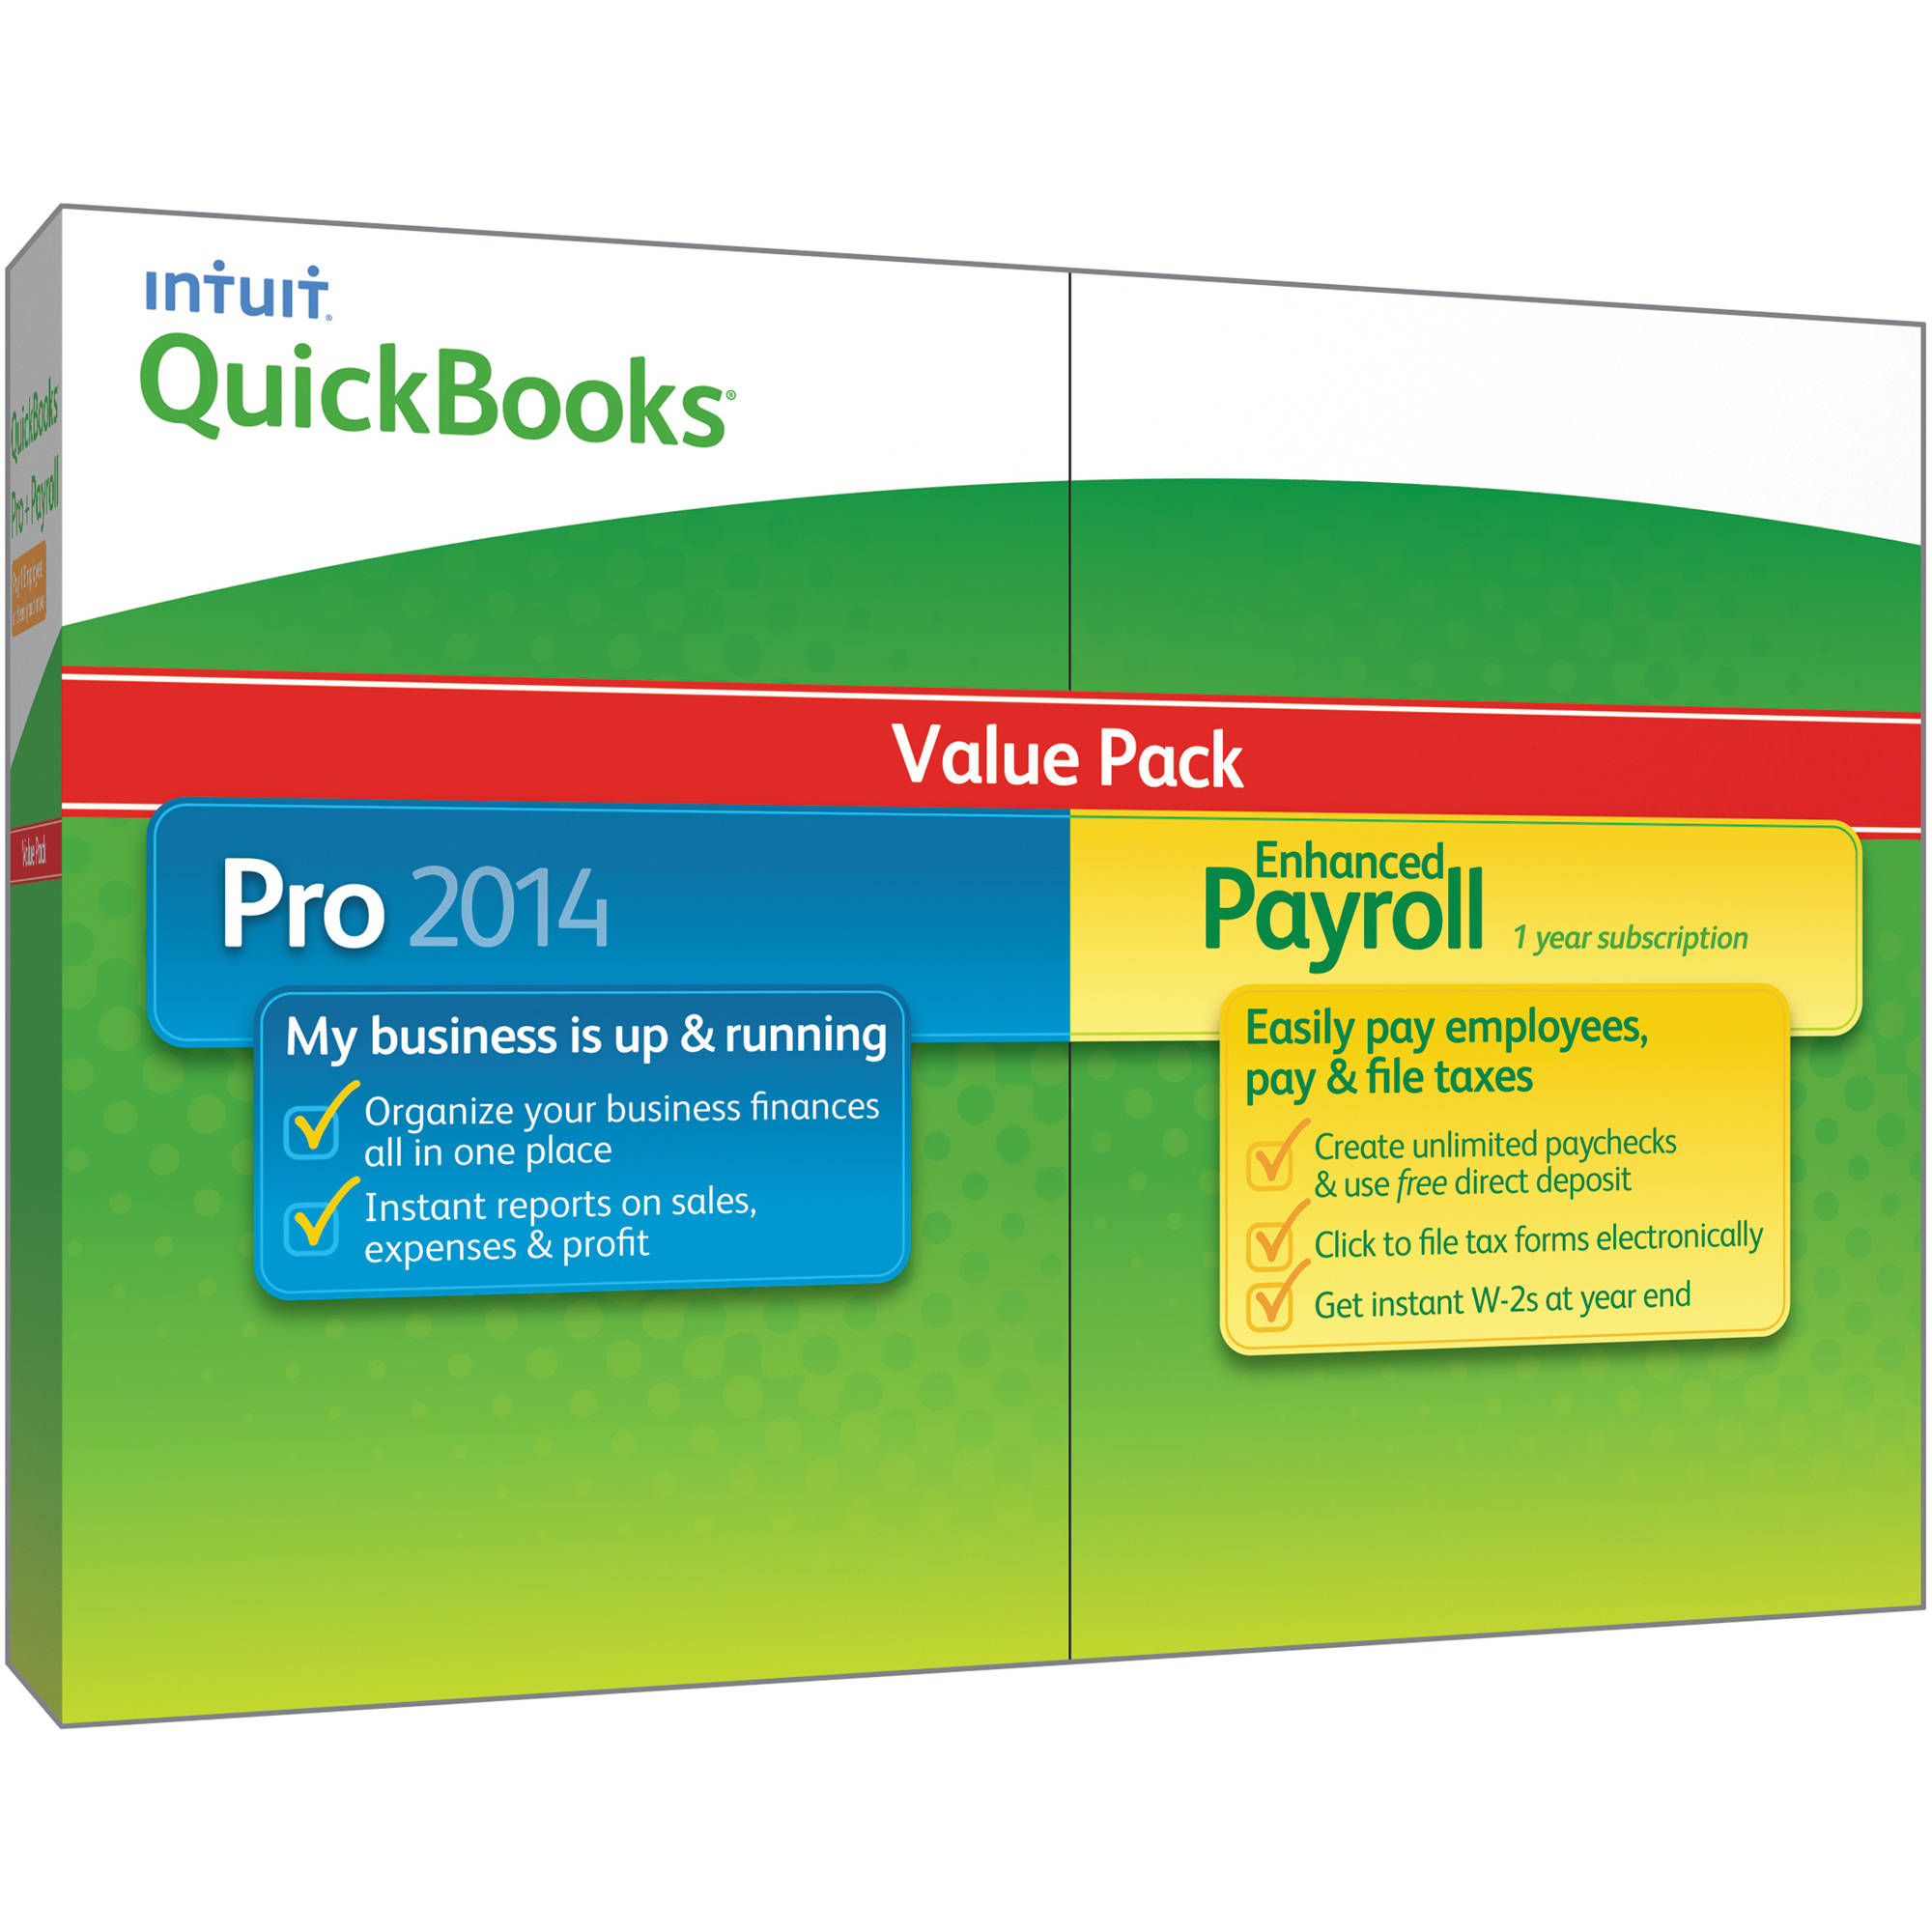 Intuit QuickBooks Pro 2014 and Enhanced Payroll (Value Pack)